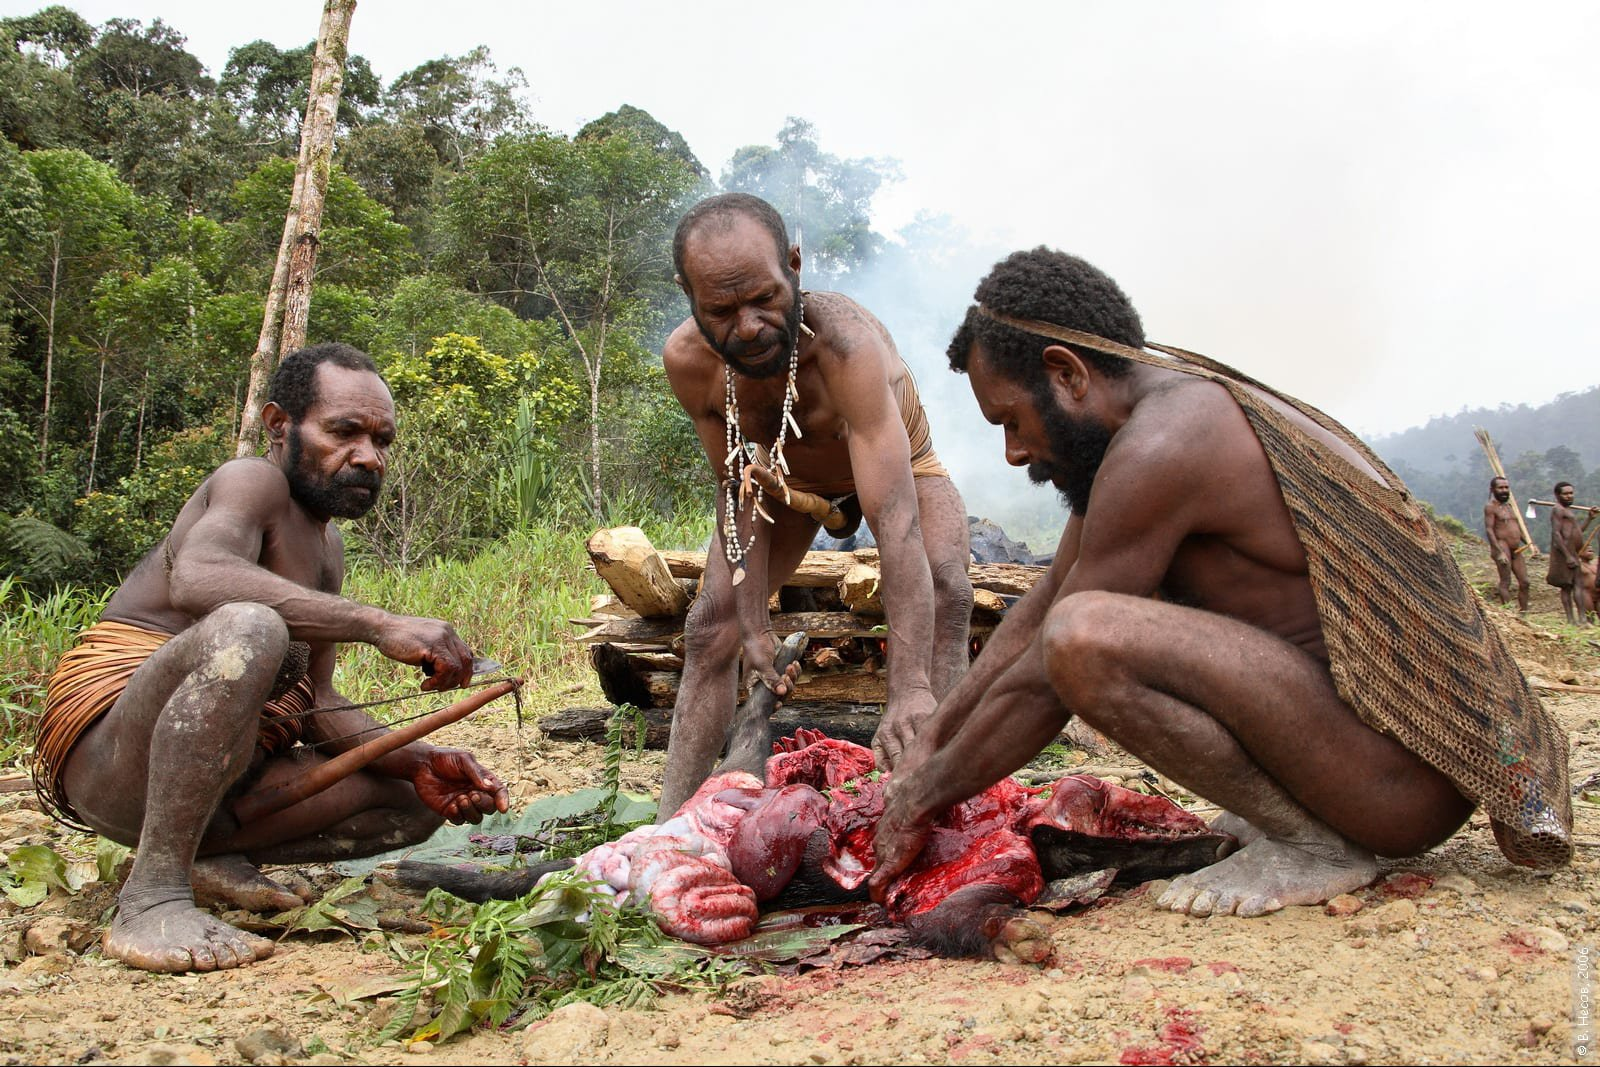 CANNIBALS!! See This Place In Indonesia Where They Eat Human Beings, They Do It To Scare Other Tribes